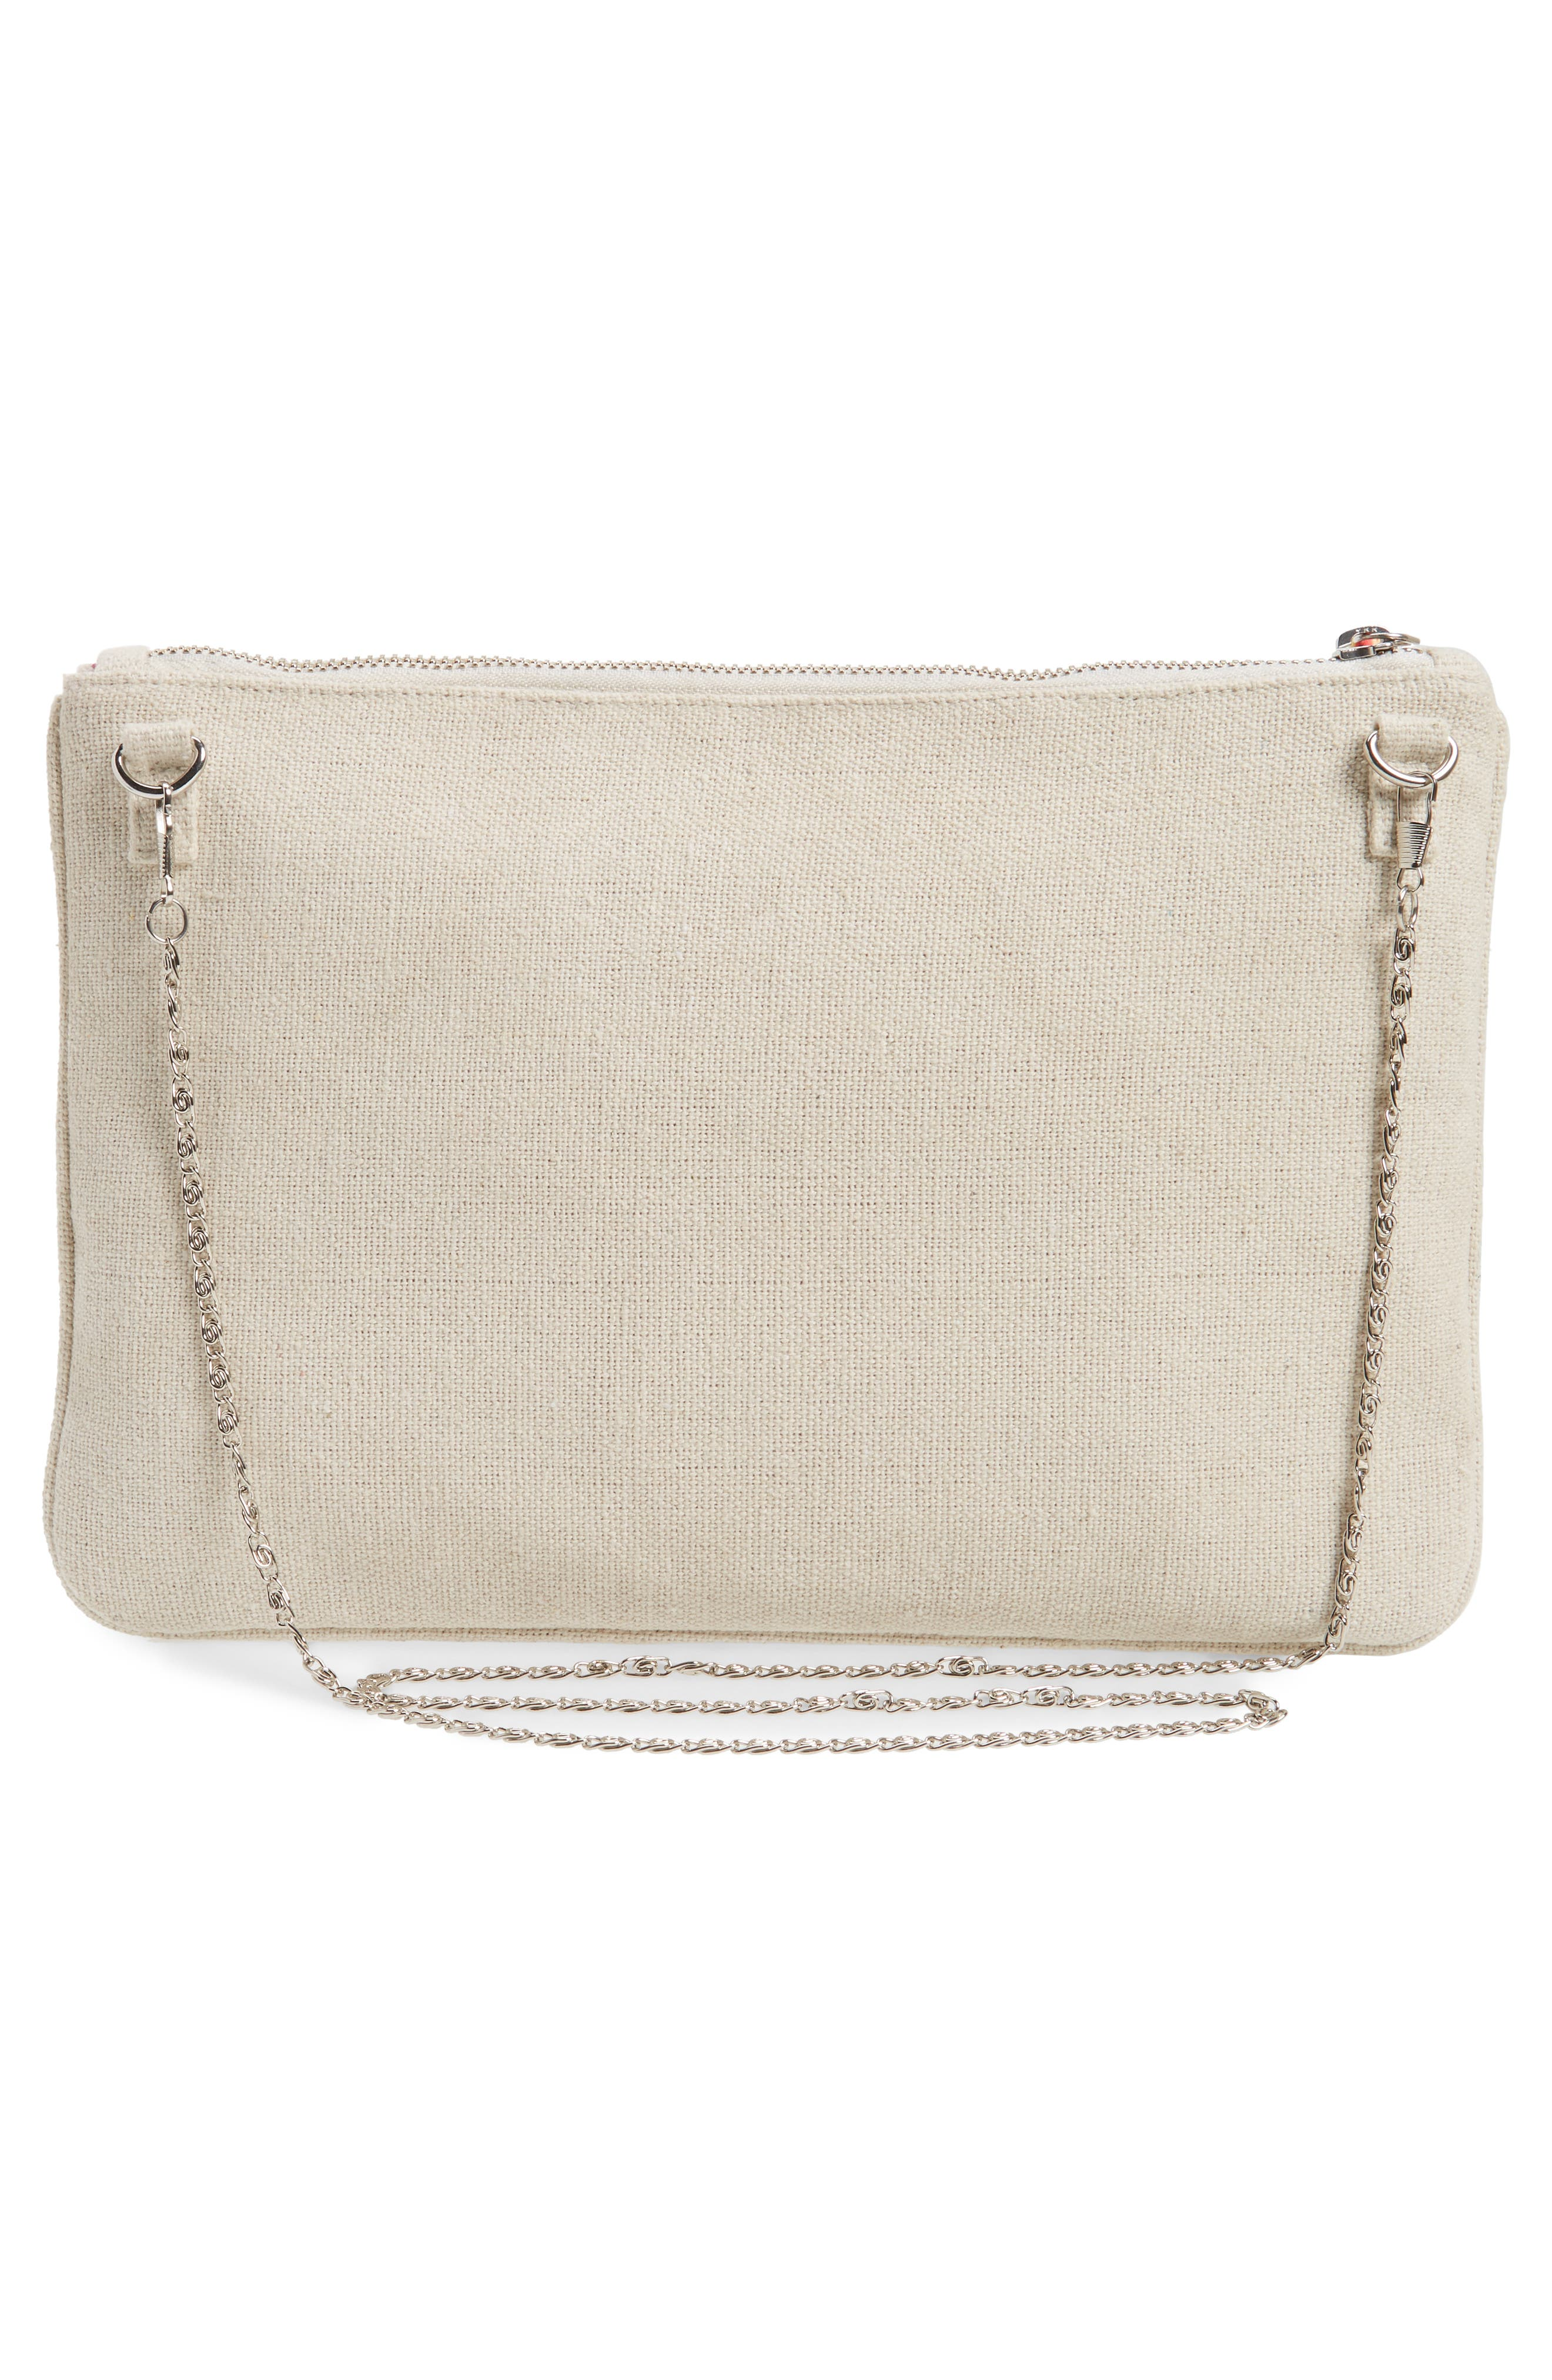 Rhinestone Appliqué Crossbody Clutch,                             Alternate thumbnail 3, color,                             250